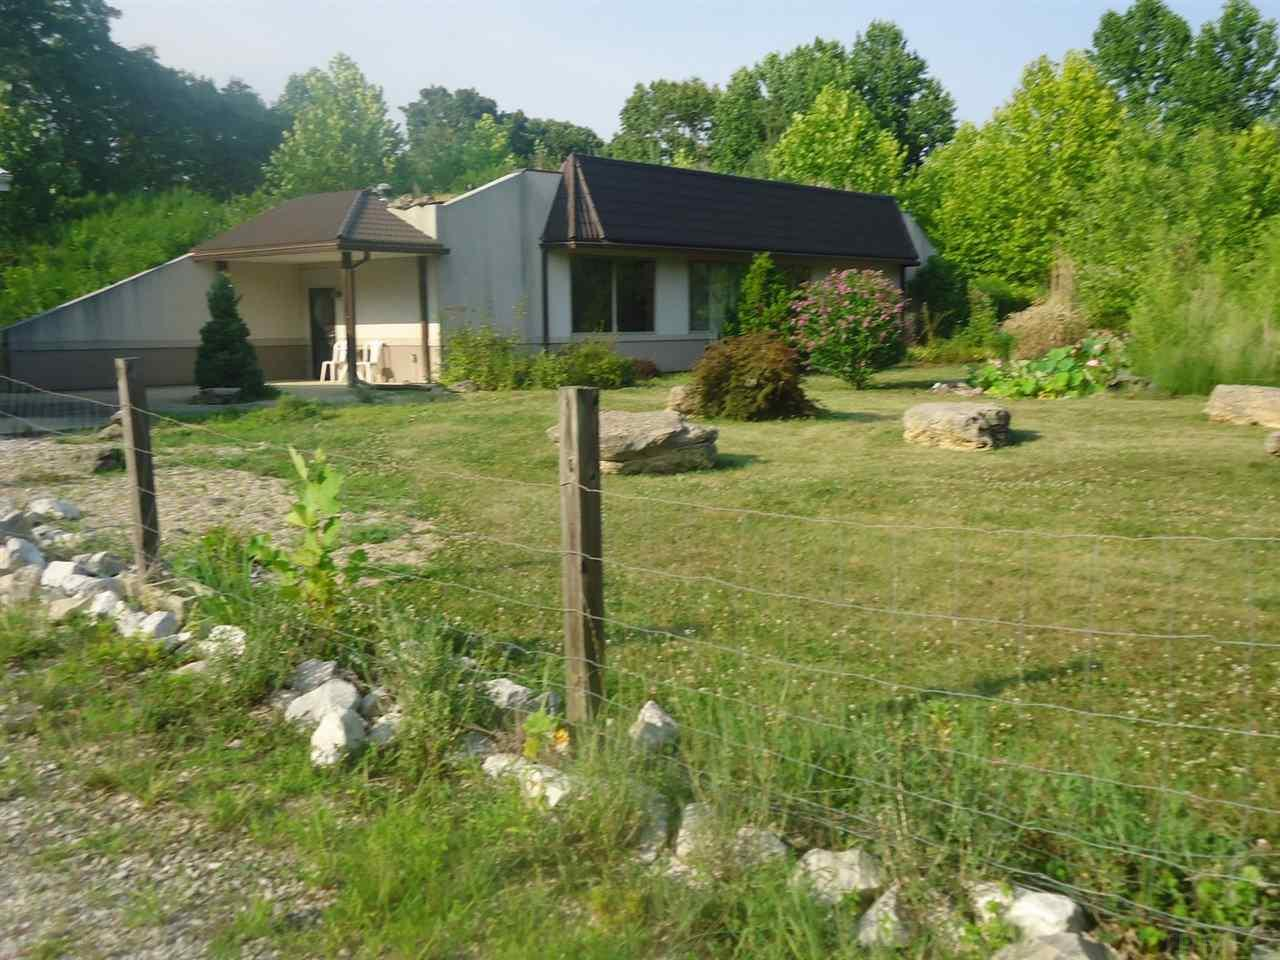 111 SCENIC HILLS CAMP RD, Mitchell, IN 47446